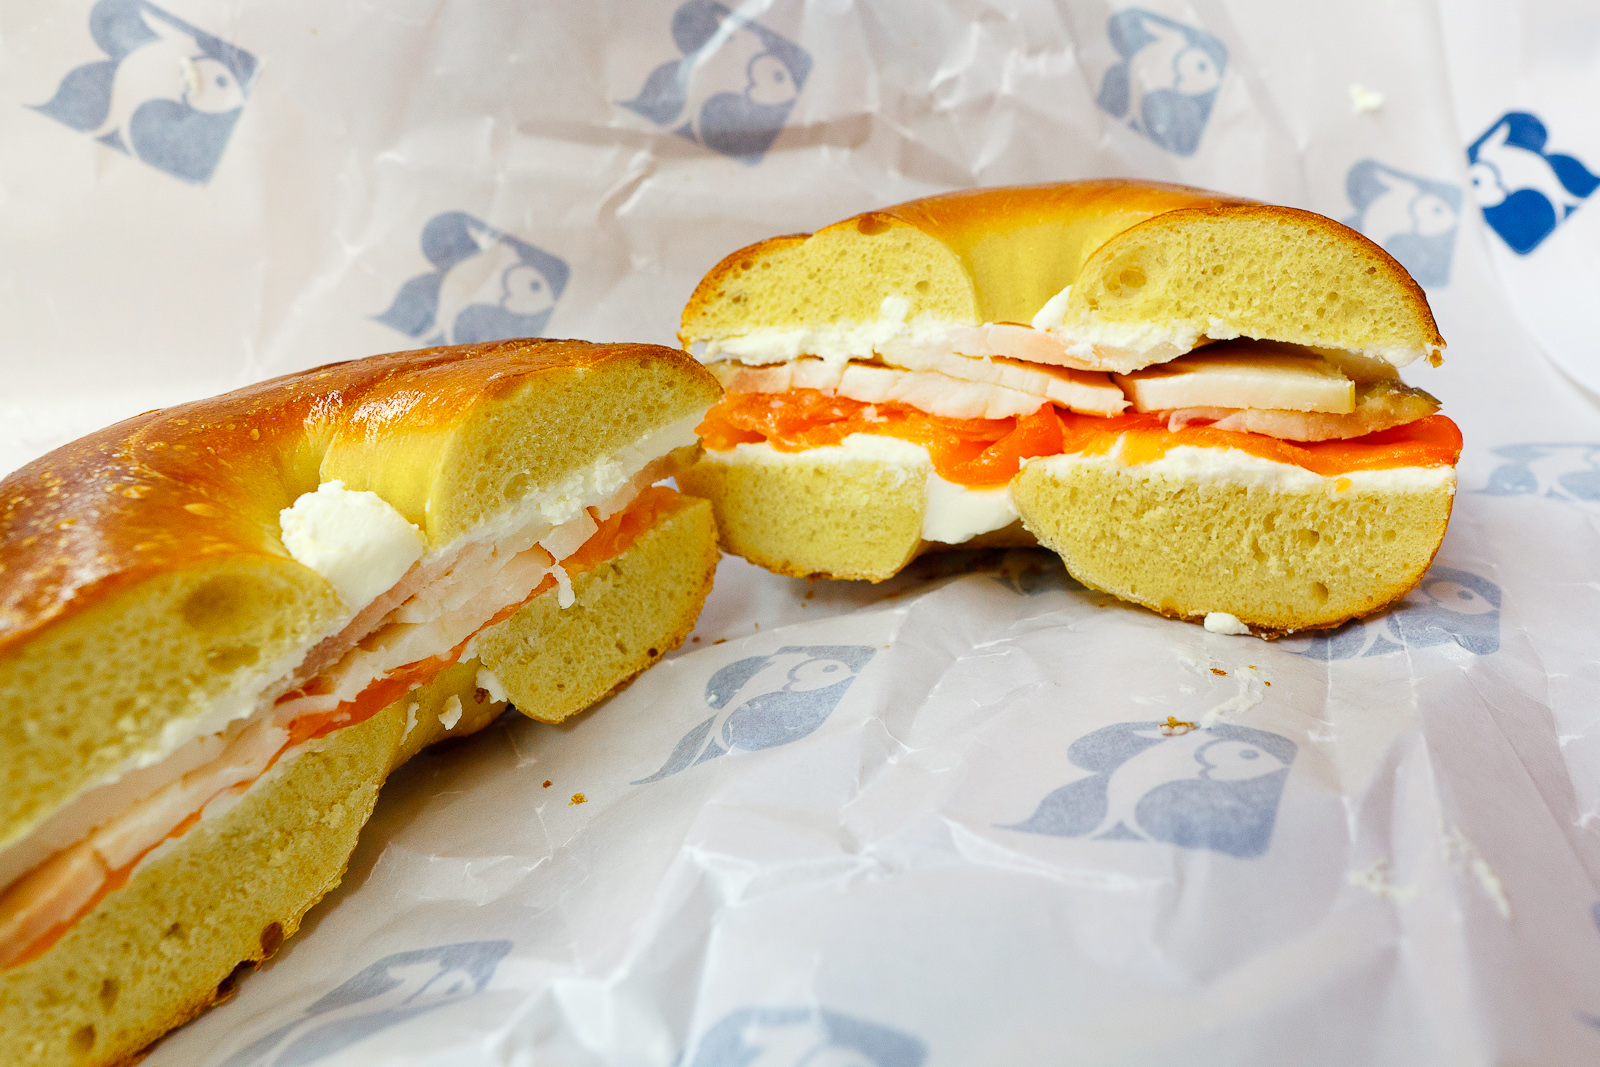 Generational, smoked salmon and sturgeon with cream cheese on an egg bagel ($16.95)